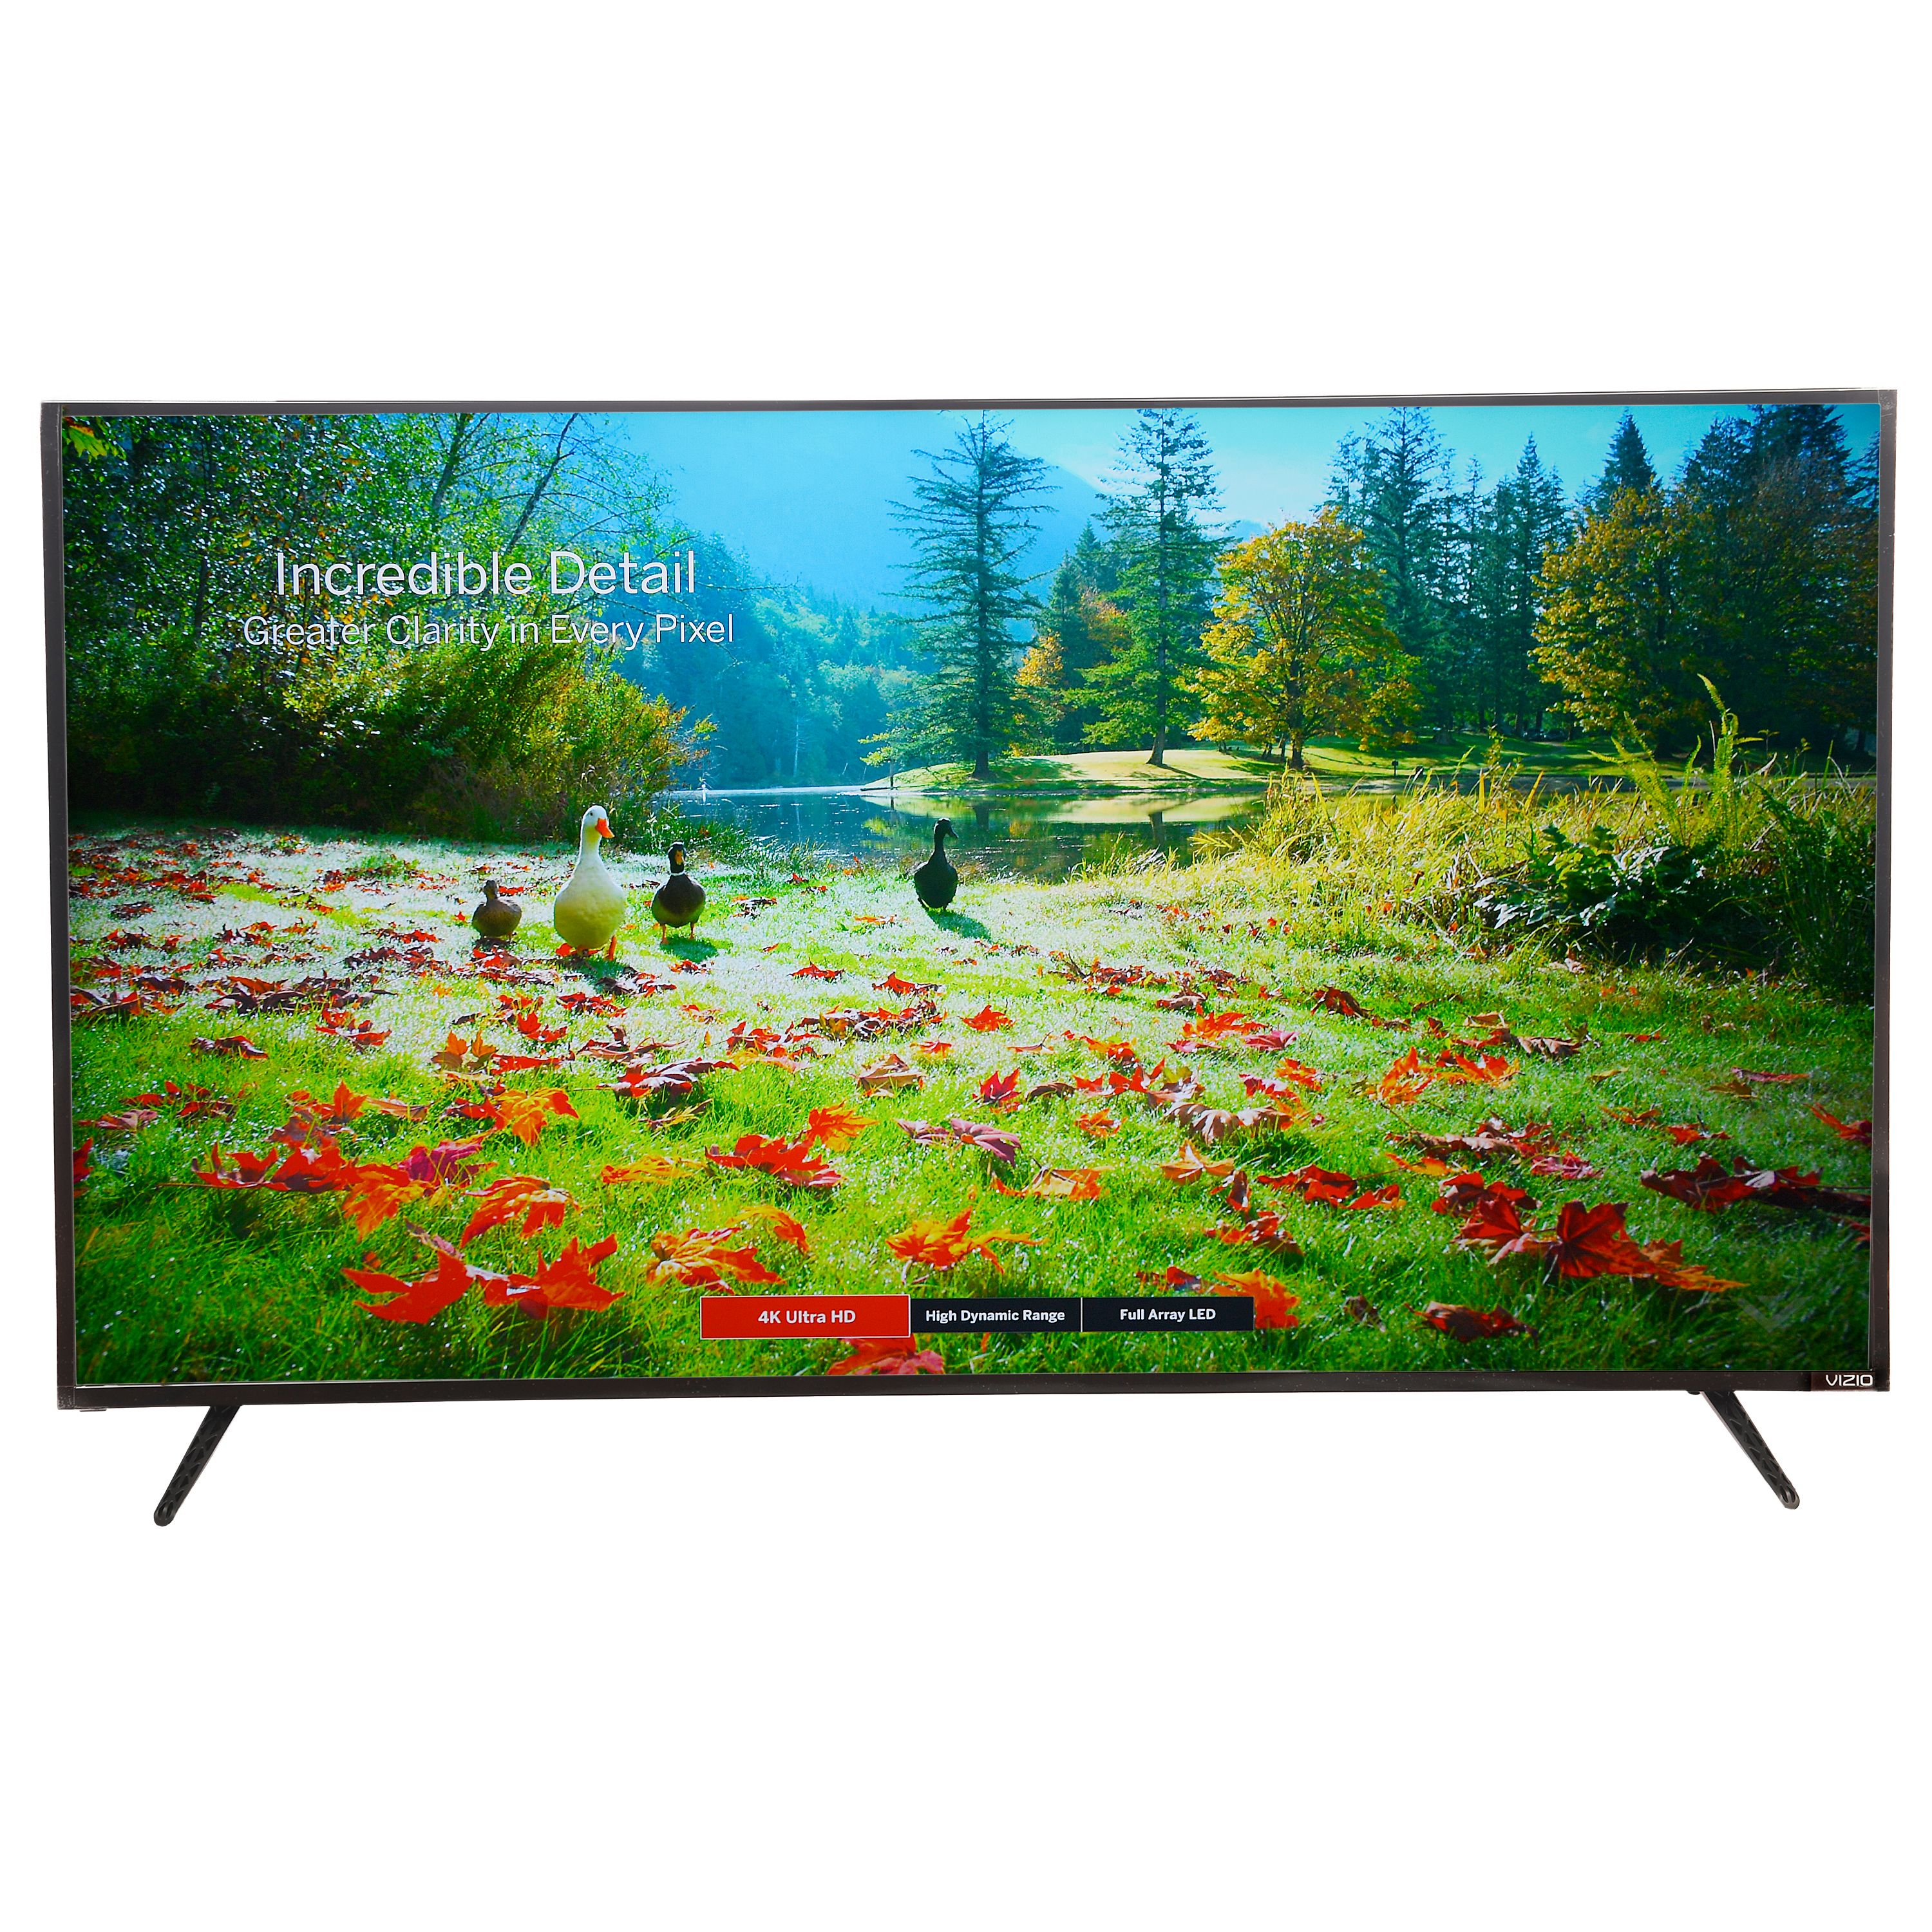 Vizio 65 Inch Full-array LED SmartCast TV